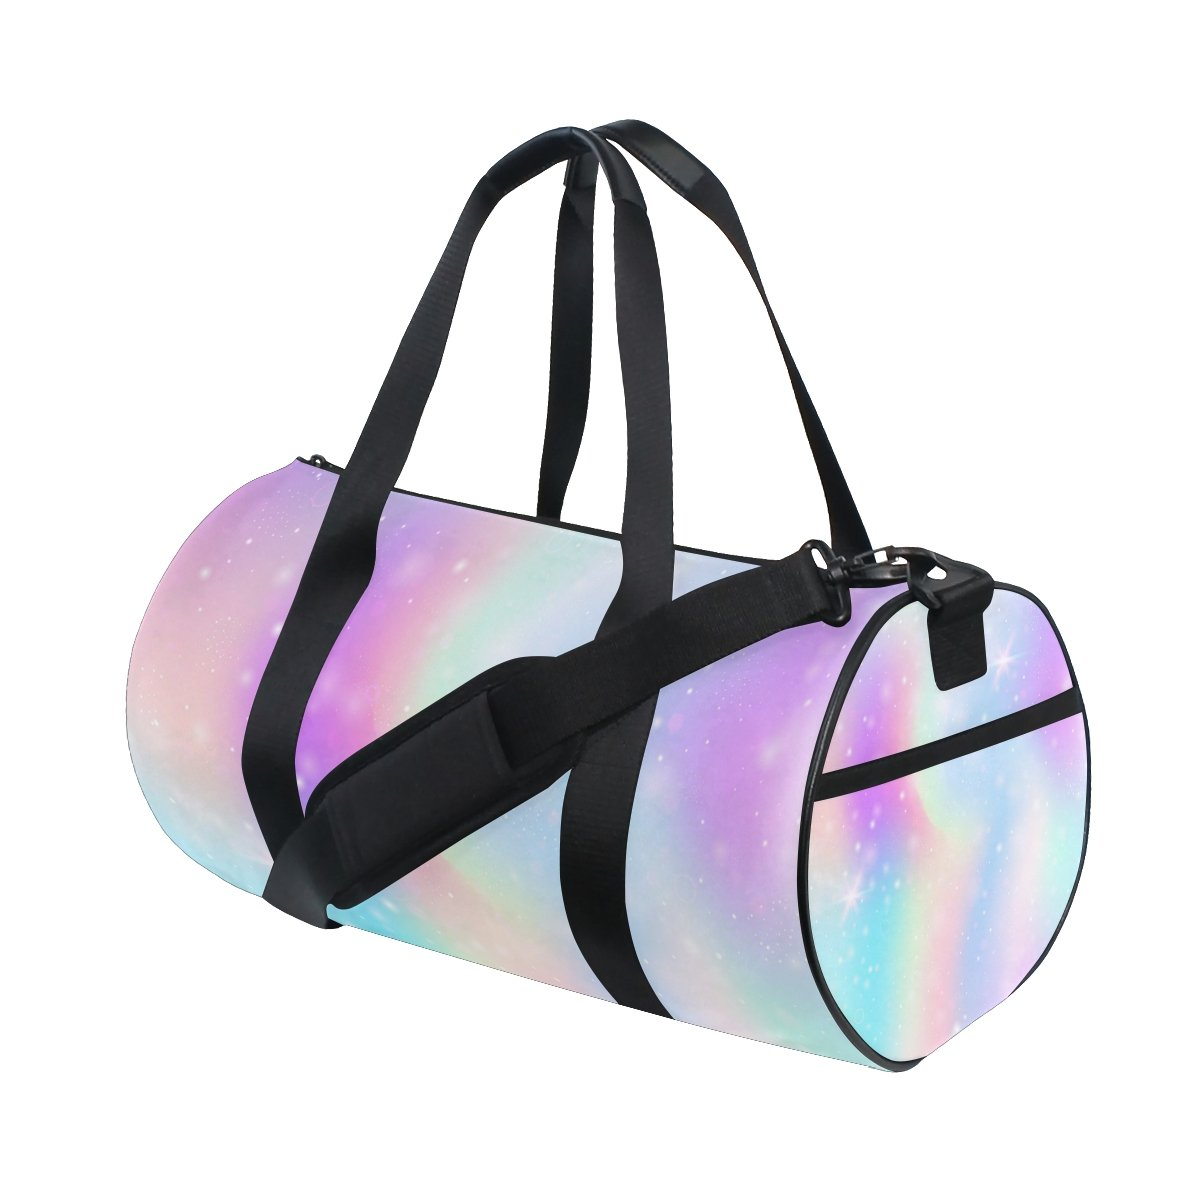 ALAZA Pink Glitter Hearts Travel Duffle Bag Sports Luggage with Backpack Tote Gym Bag for Man and Women